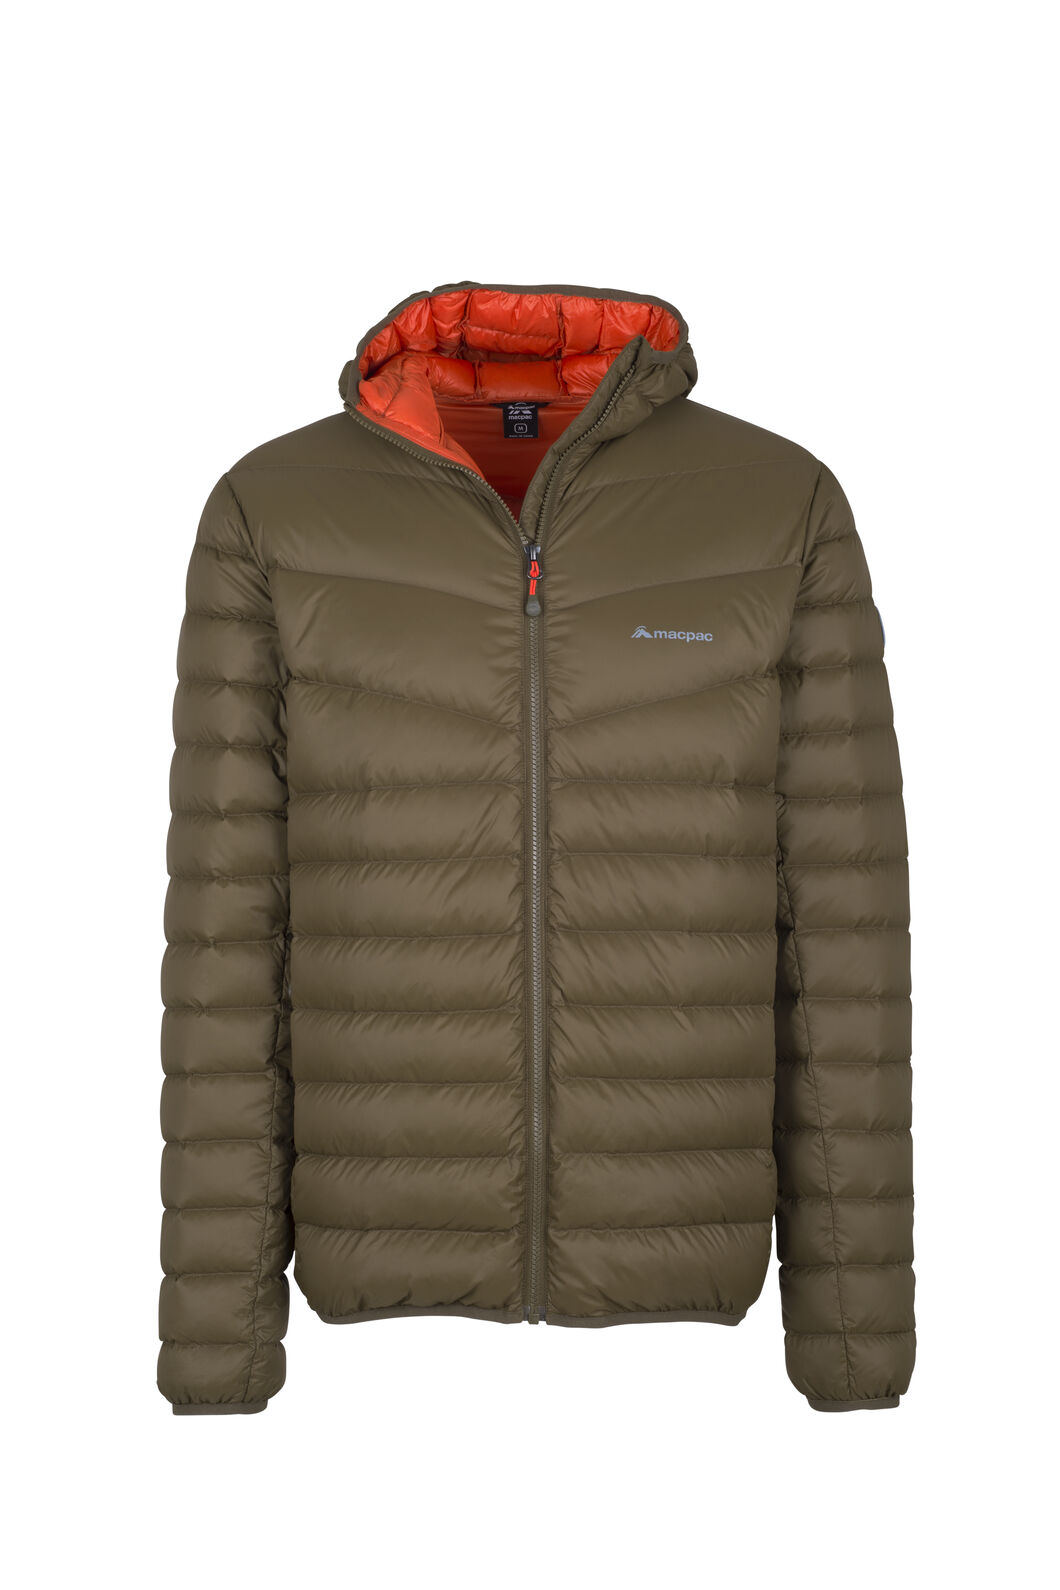 Macpac Mercury Down Jacket - Men's, Military Olive, hi-res